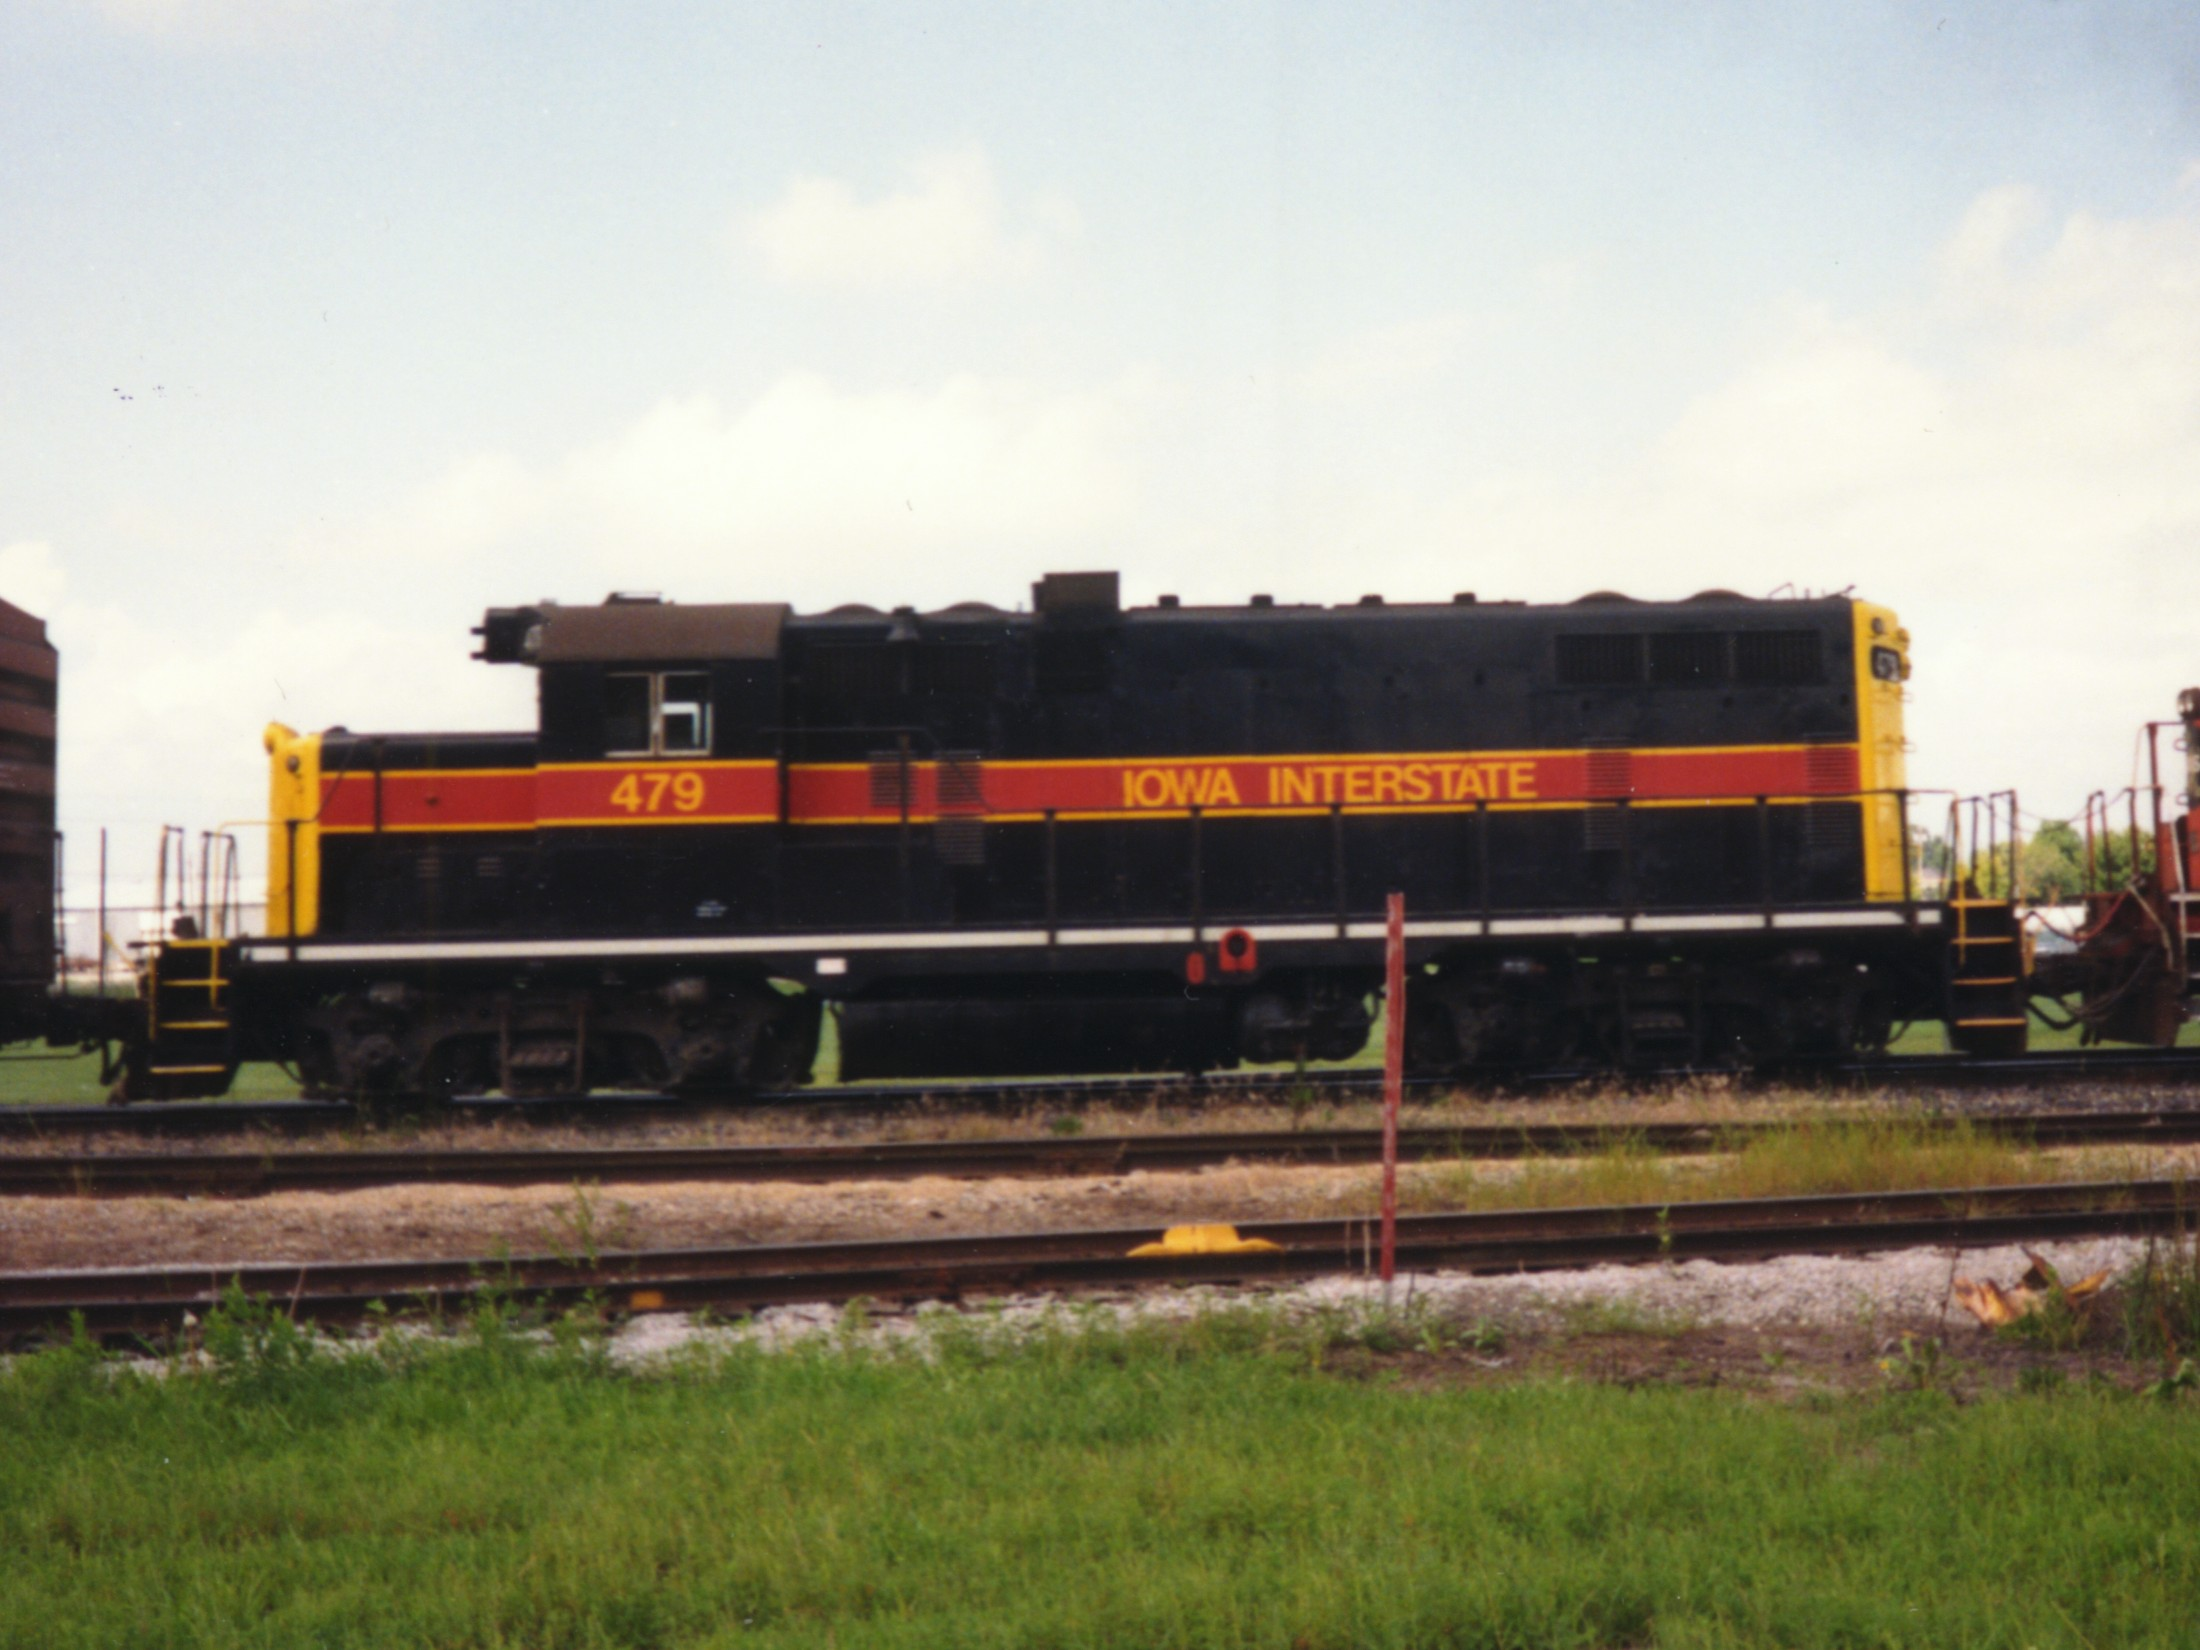 IAIS 479 at Altoona, IA on 01-Aug-1992